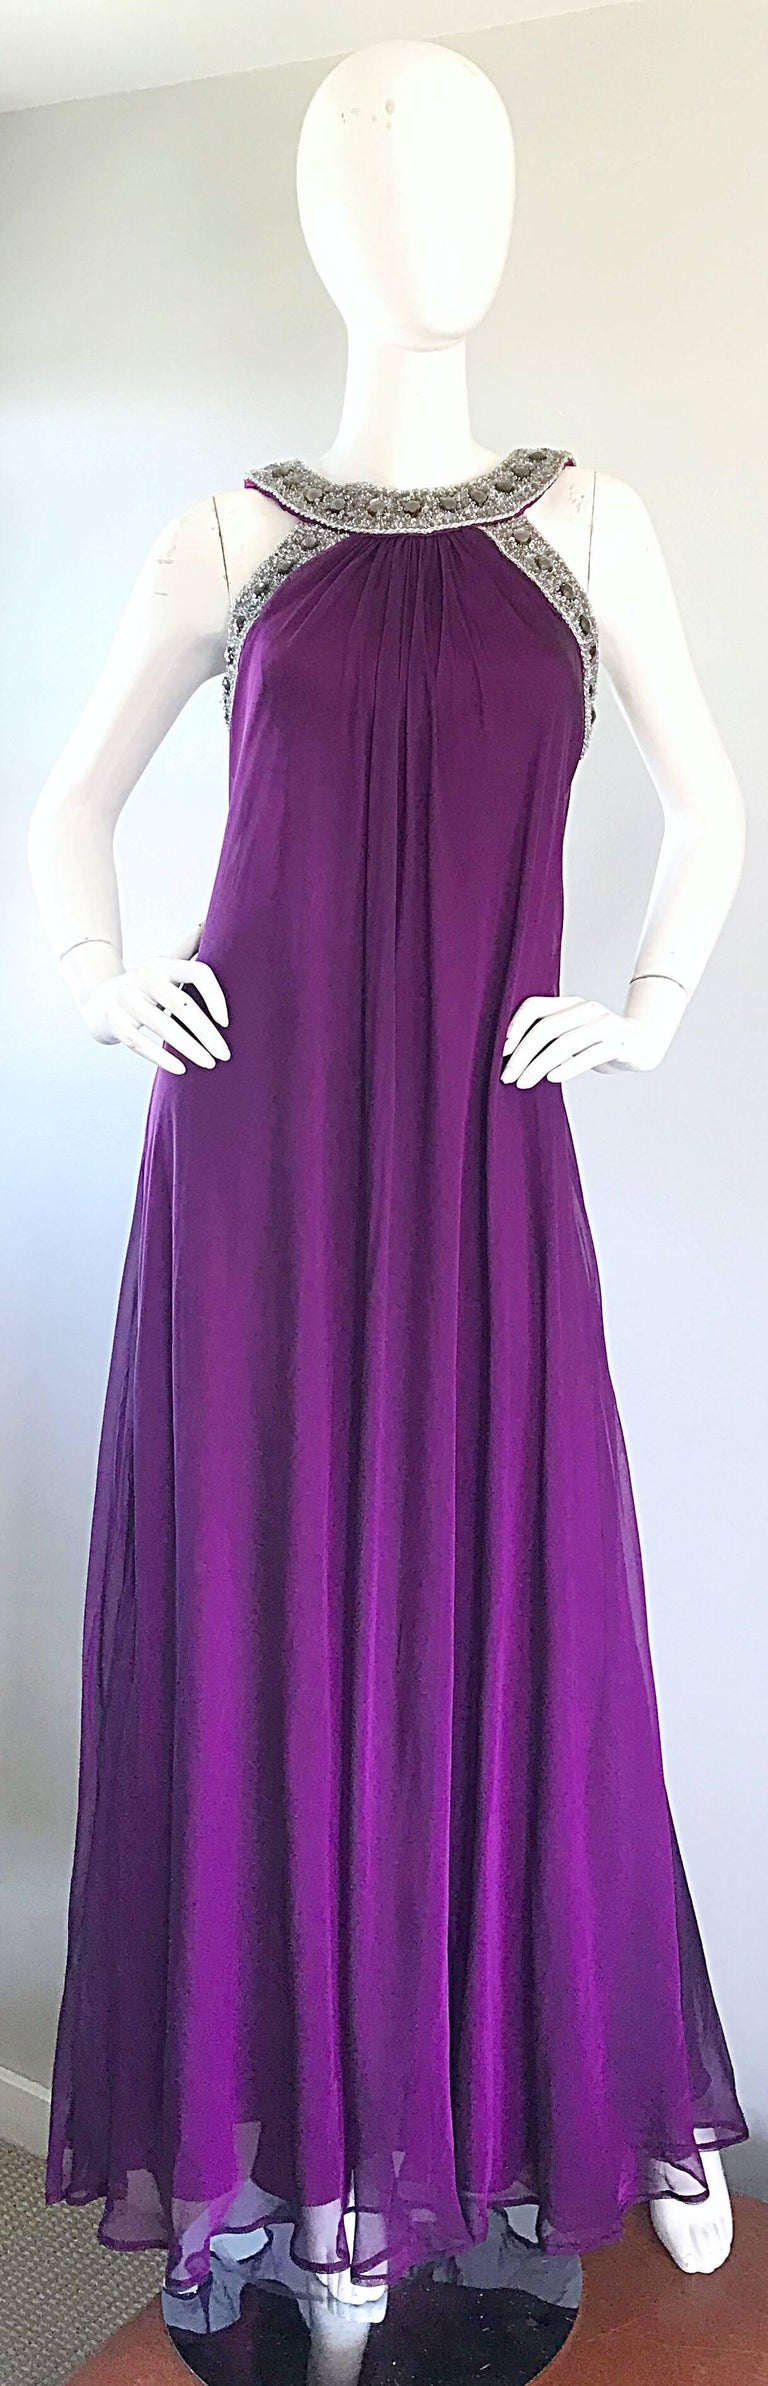 Stunning 90s BADGLEY MISCHKA purple silk chiffon Grecian inspired empire shaped evening dress! Features hundreds of hand-sewn rhinestones and silver beads along the neck and arms. Layers of luxurious silk chiffon look amazing on! Hidden zipper up